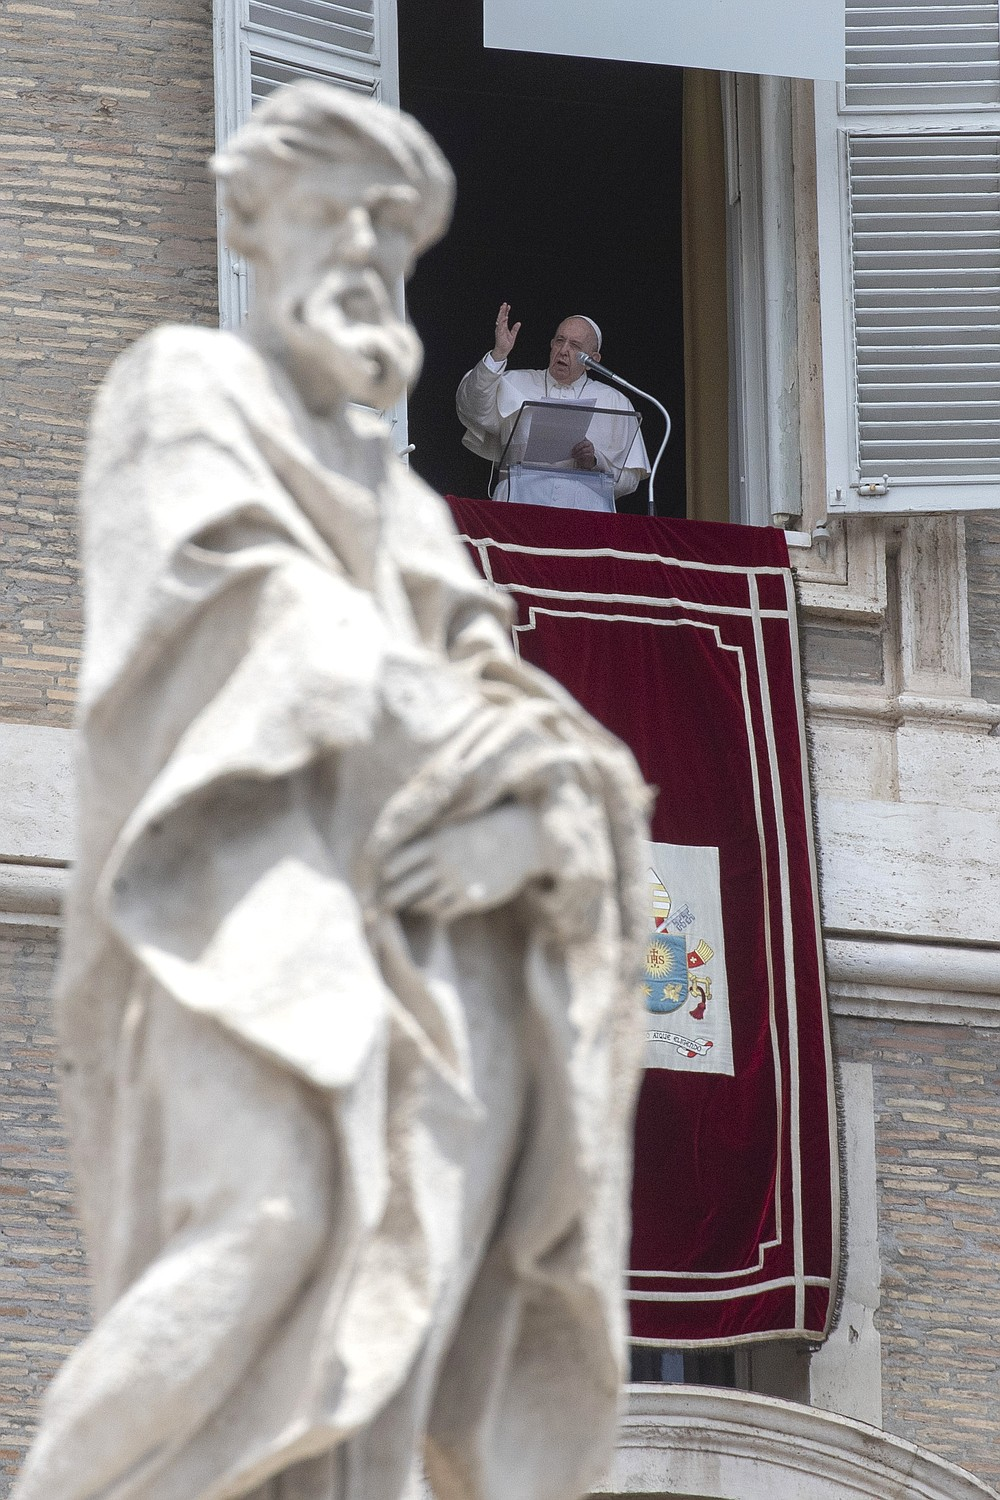 Pope Francis delivers his Angelus blessing from the window of his studio overlooking St. Peter's Square, at the Vatican, Sunday, June 14, 2020. (AP Photo/Alessandra Tarantino)